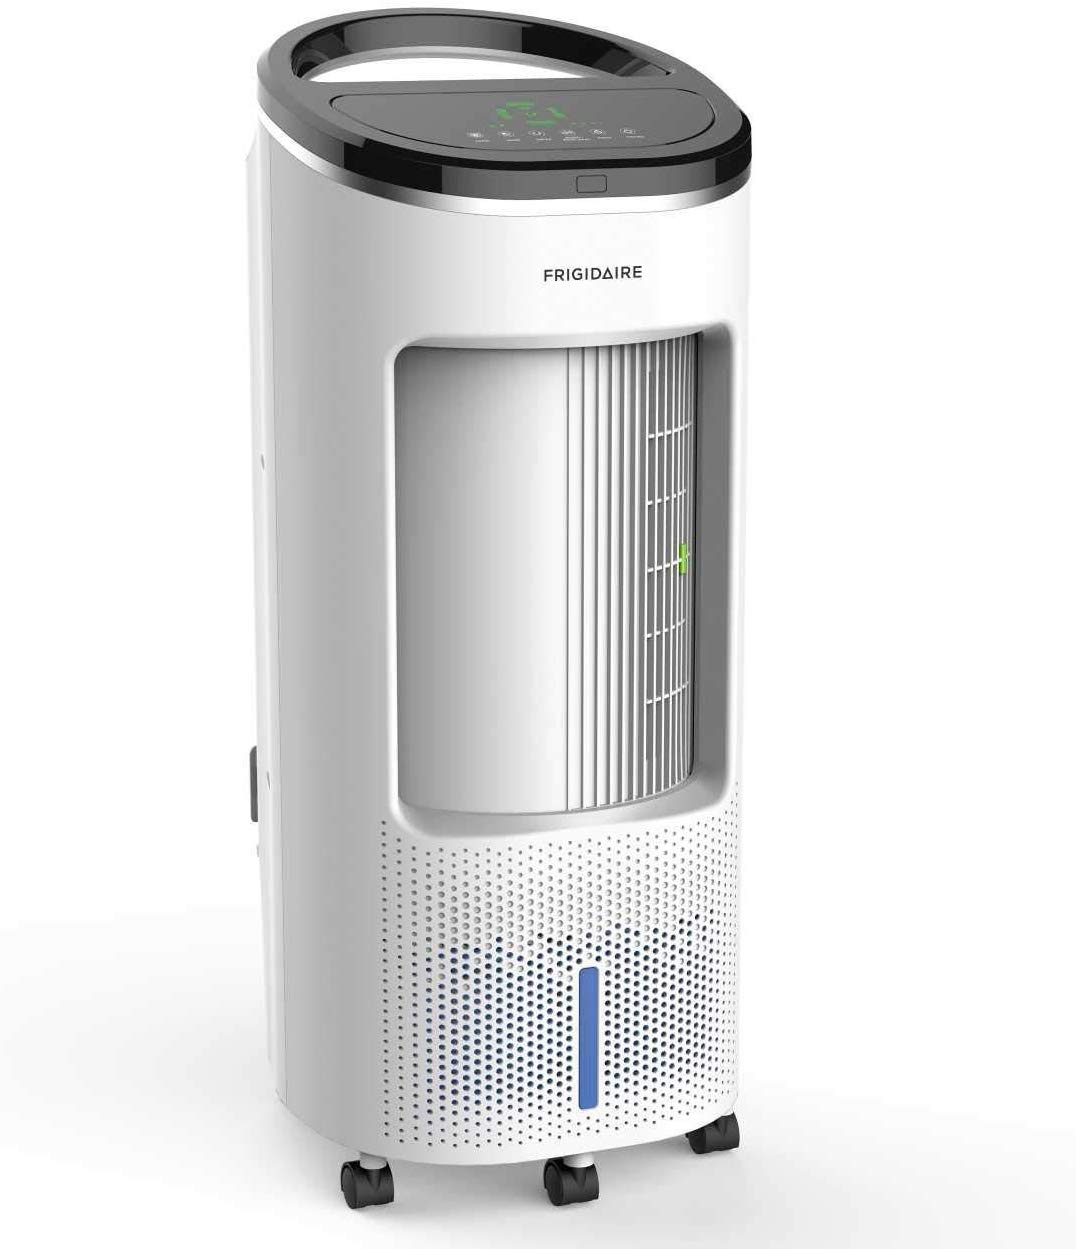 Frigidaire fan and humidifier